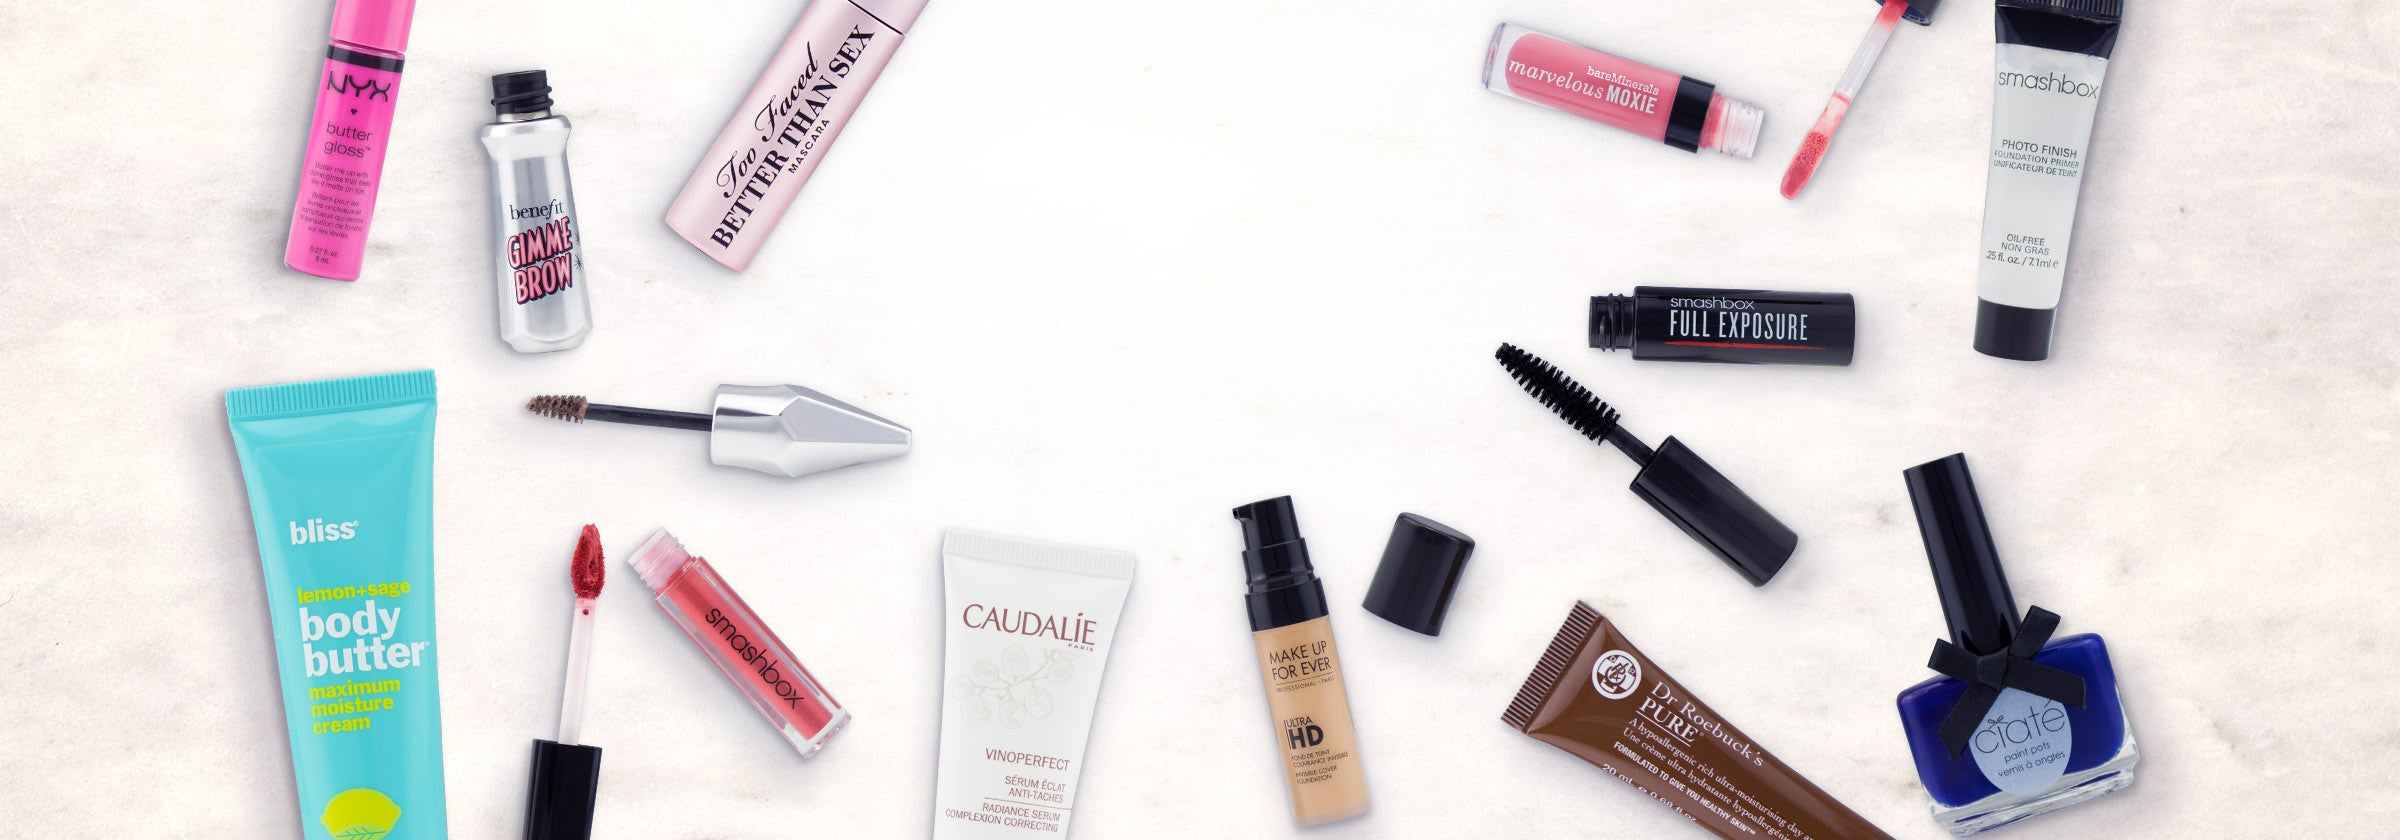 topbox.ca - Discover the Top Beauty Products